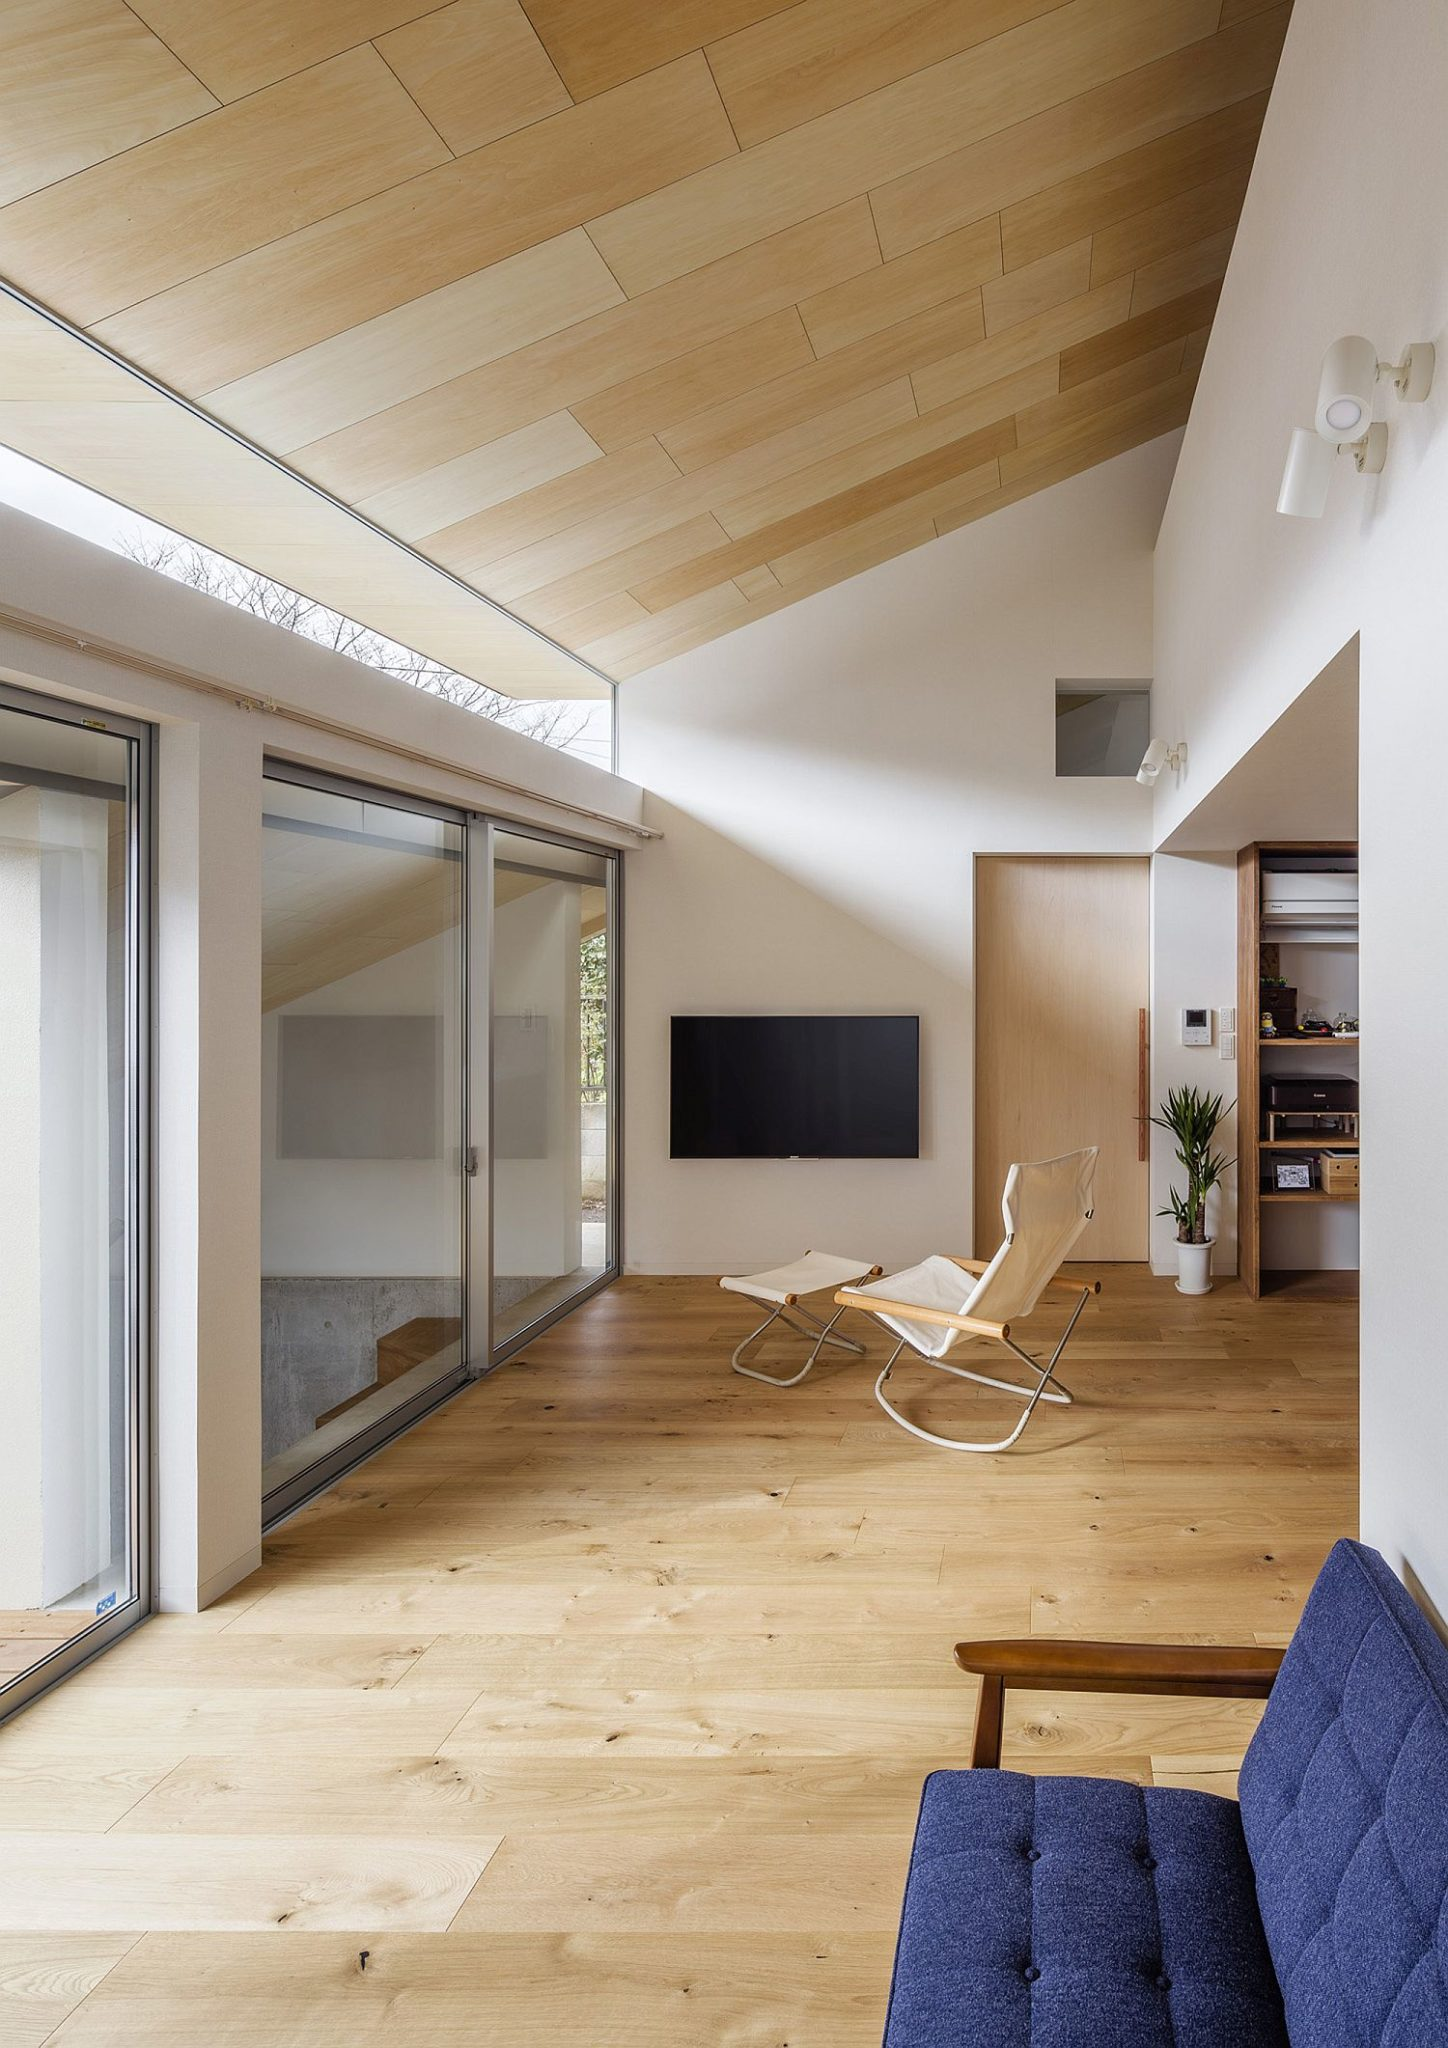 Wooden planks add warmth to the interior